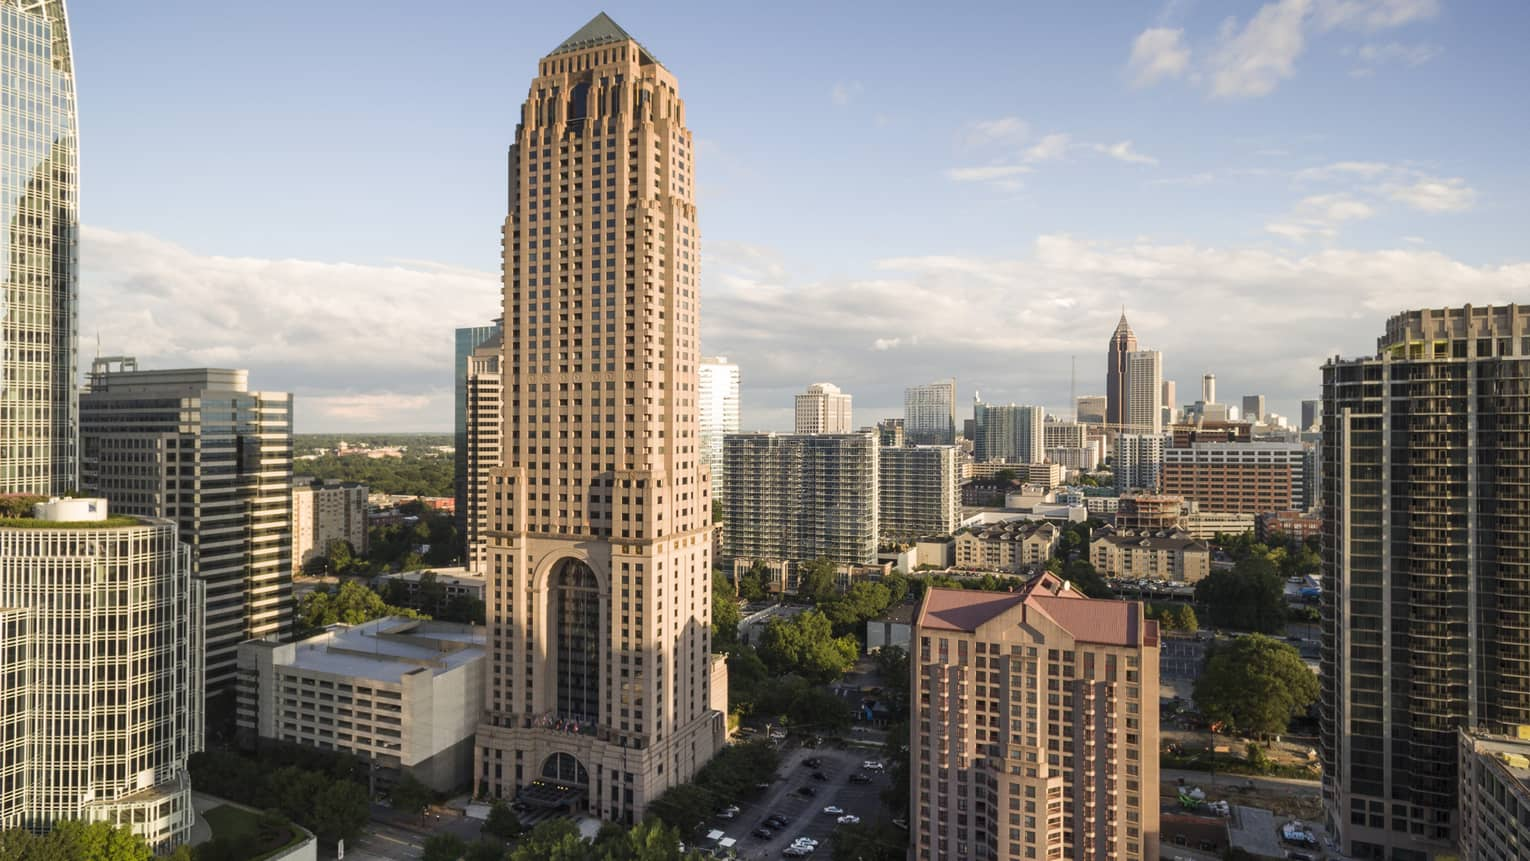 Four Seasons Hotel Atlanta building towering over Midtown on sunny day